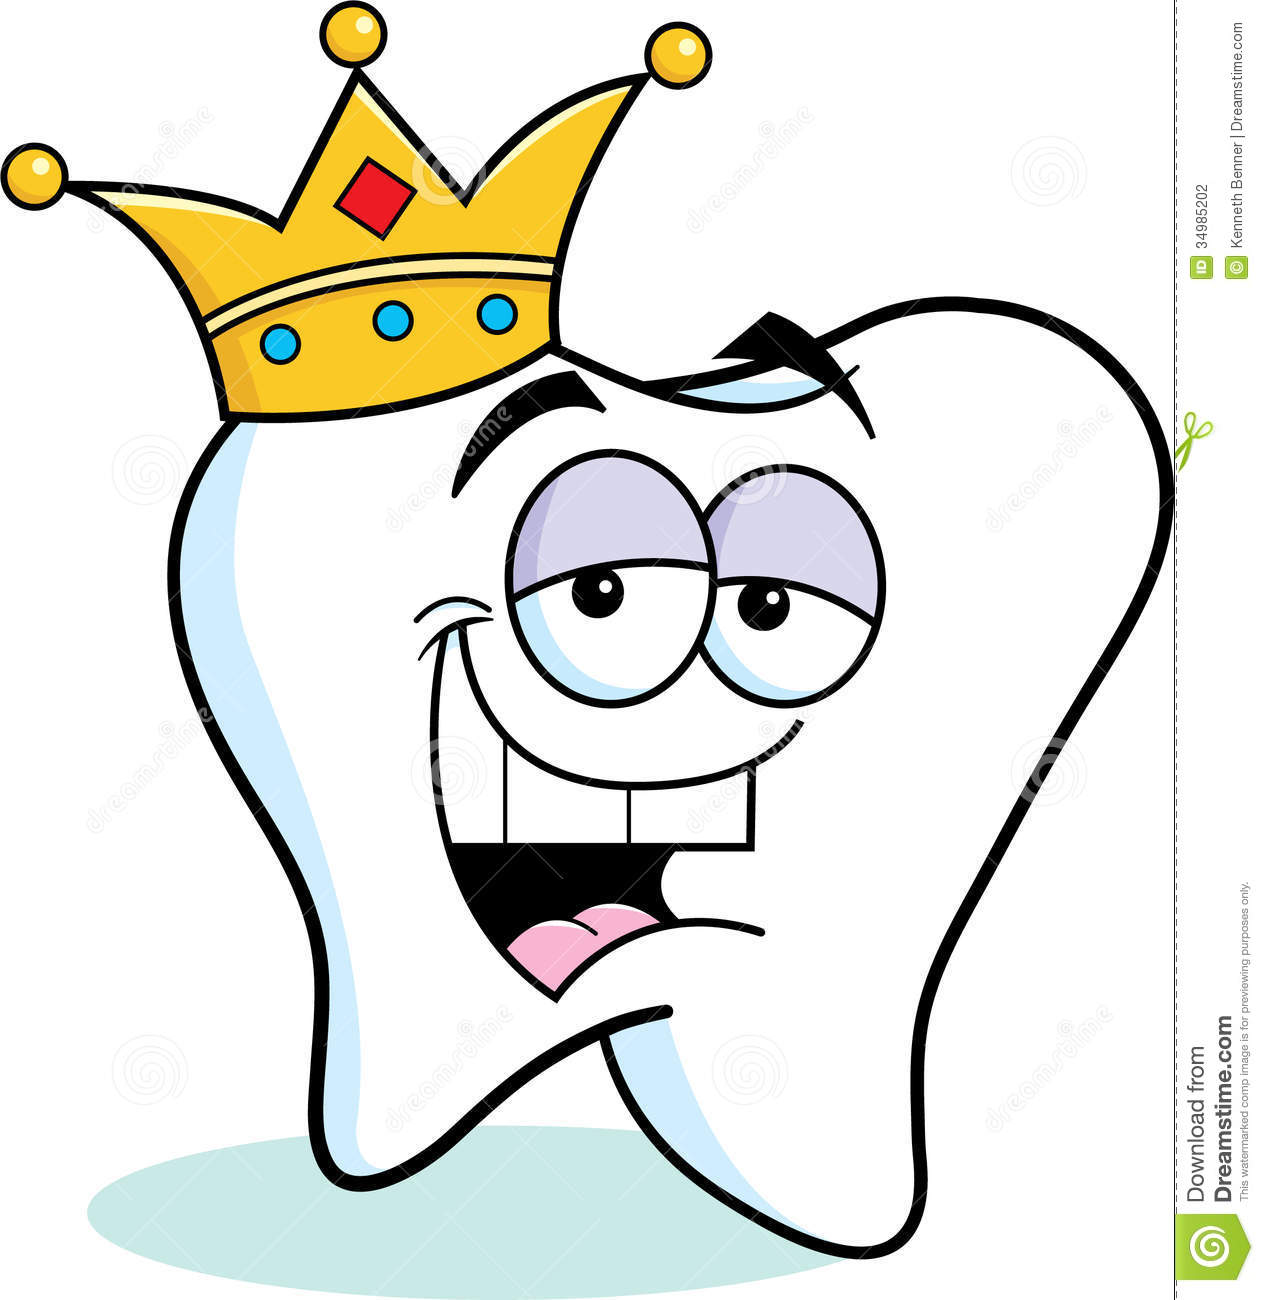 Cartoon Tooth Wearing A Crown Stock Vector Illustration Of Dental Medical 34985202 Every day new 3d models from all over the world. dreamstime com